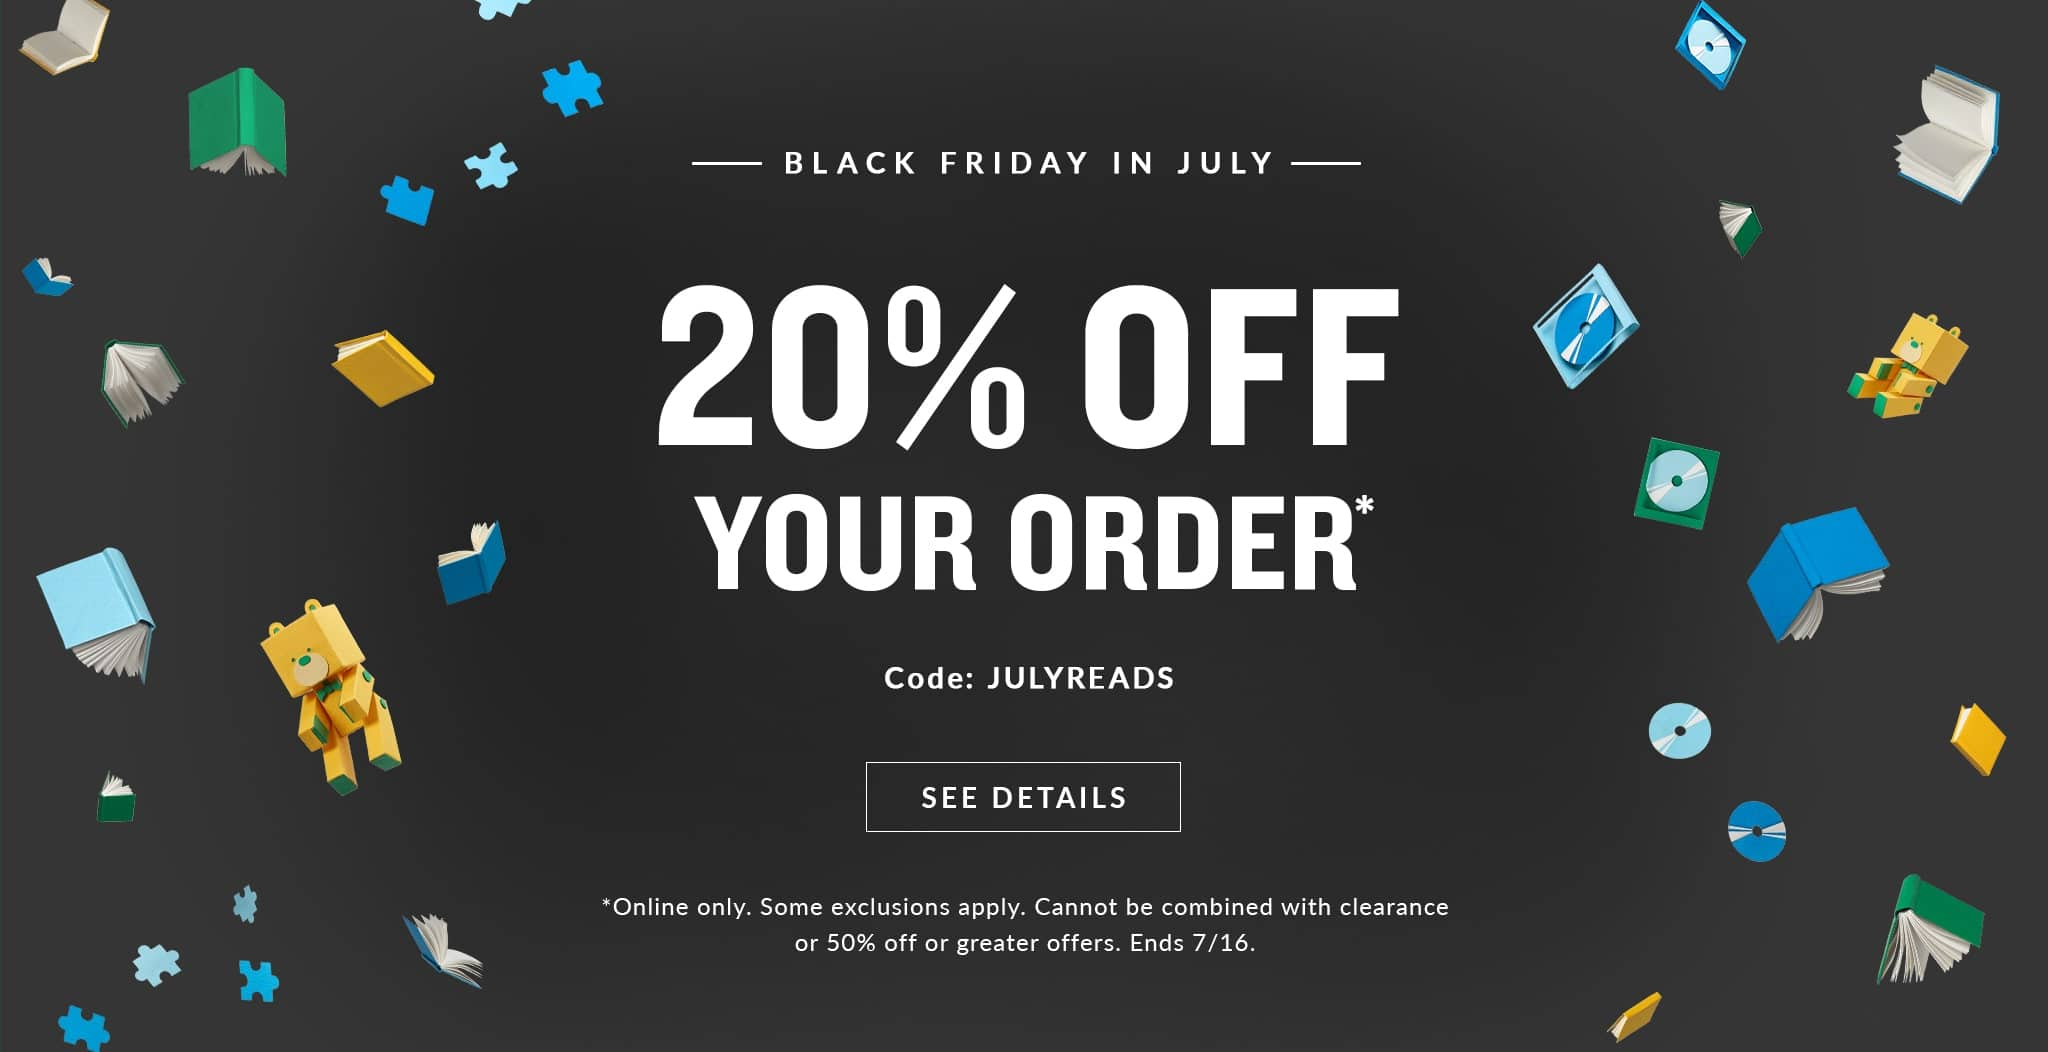 Barnes & Noble 20% Off Coupon (Expires July 16, 2019). Black Friday in July Sale.